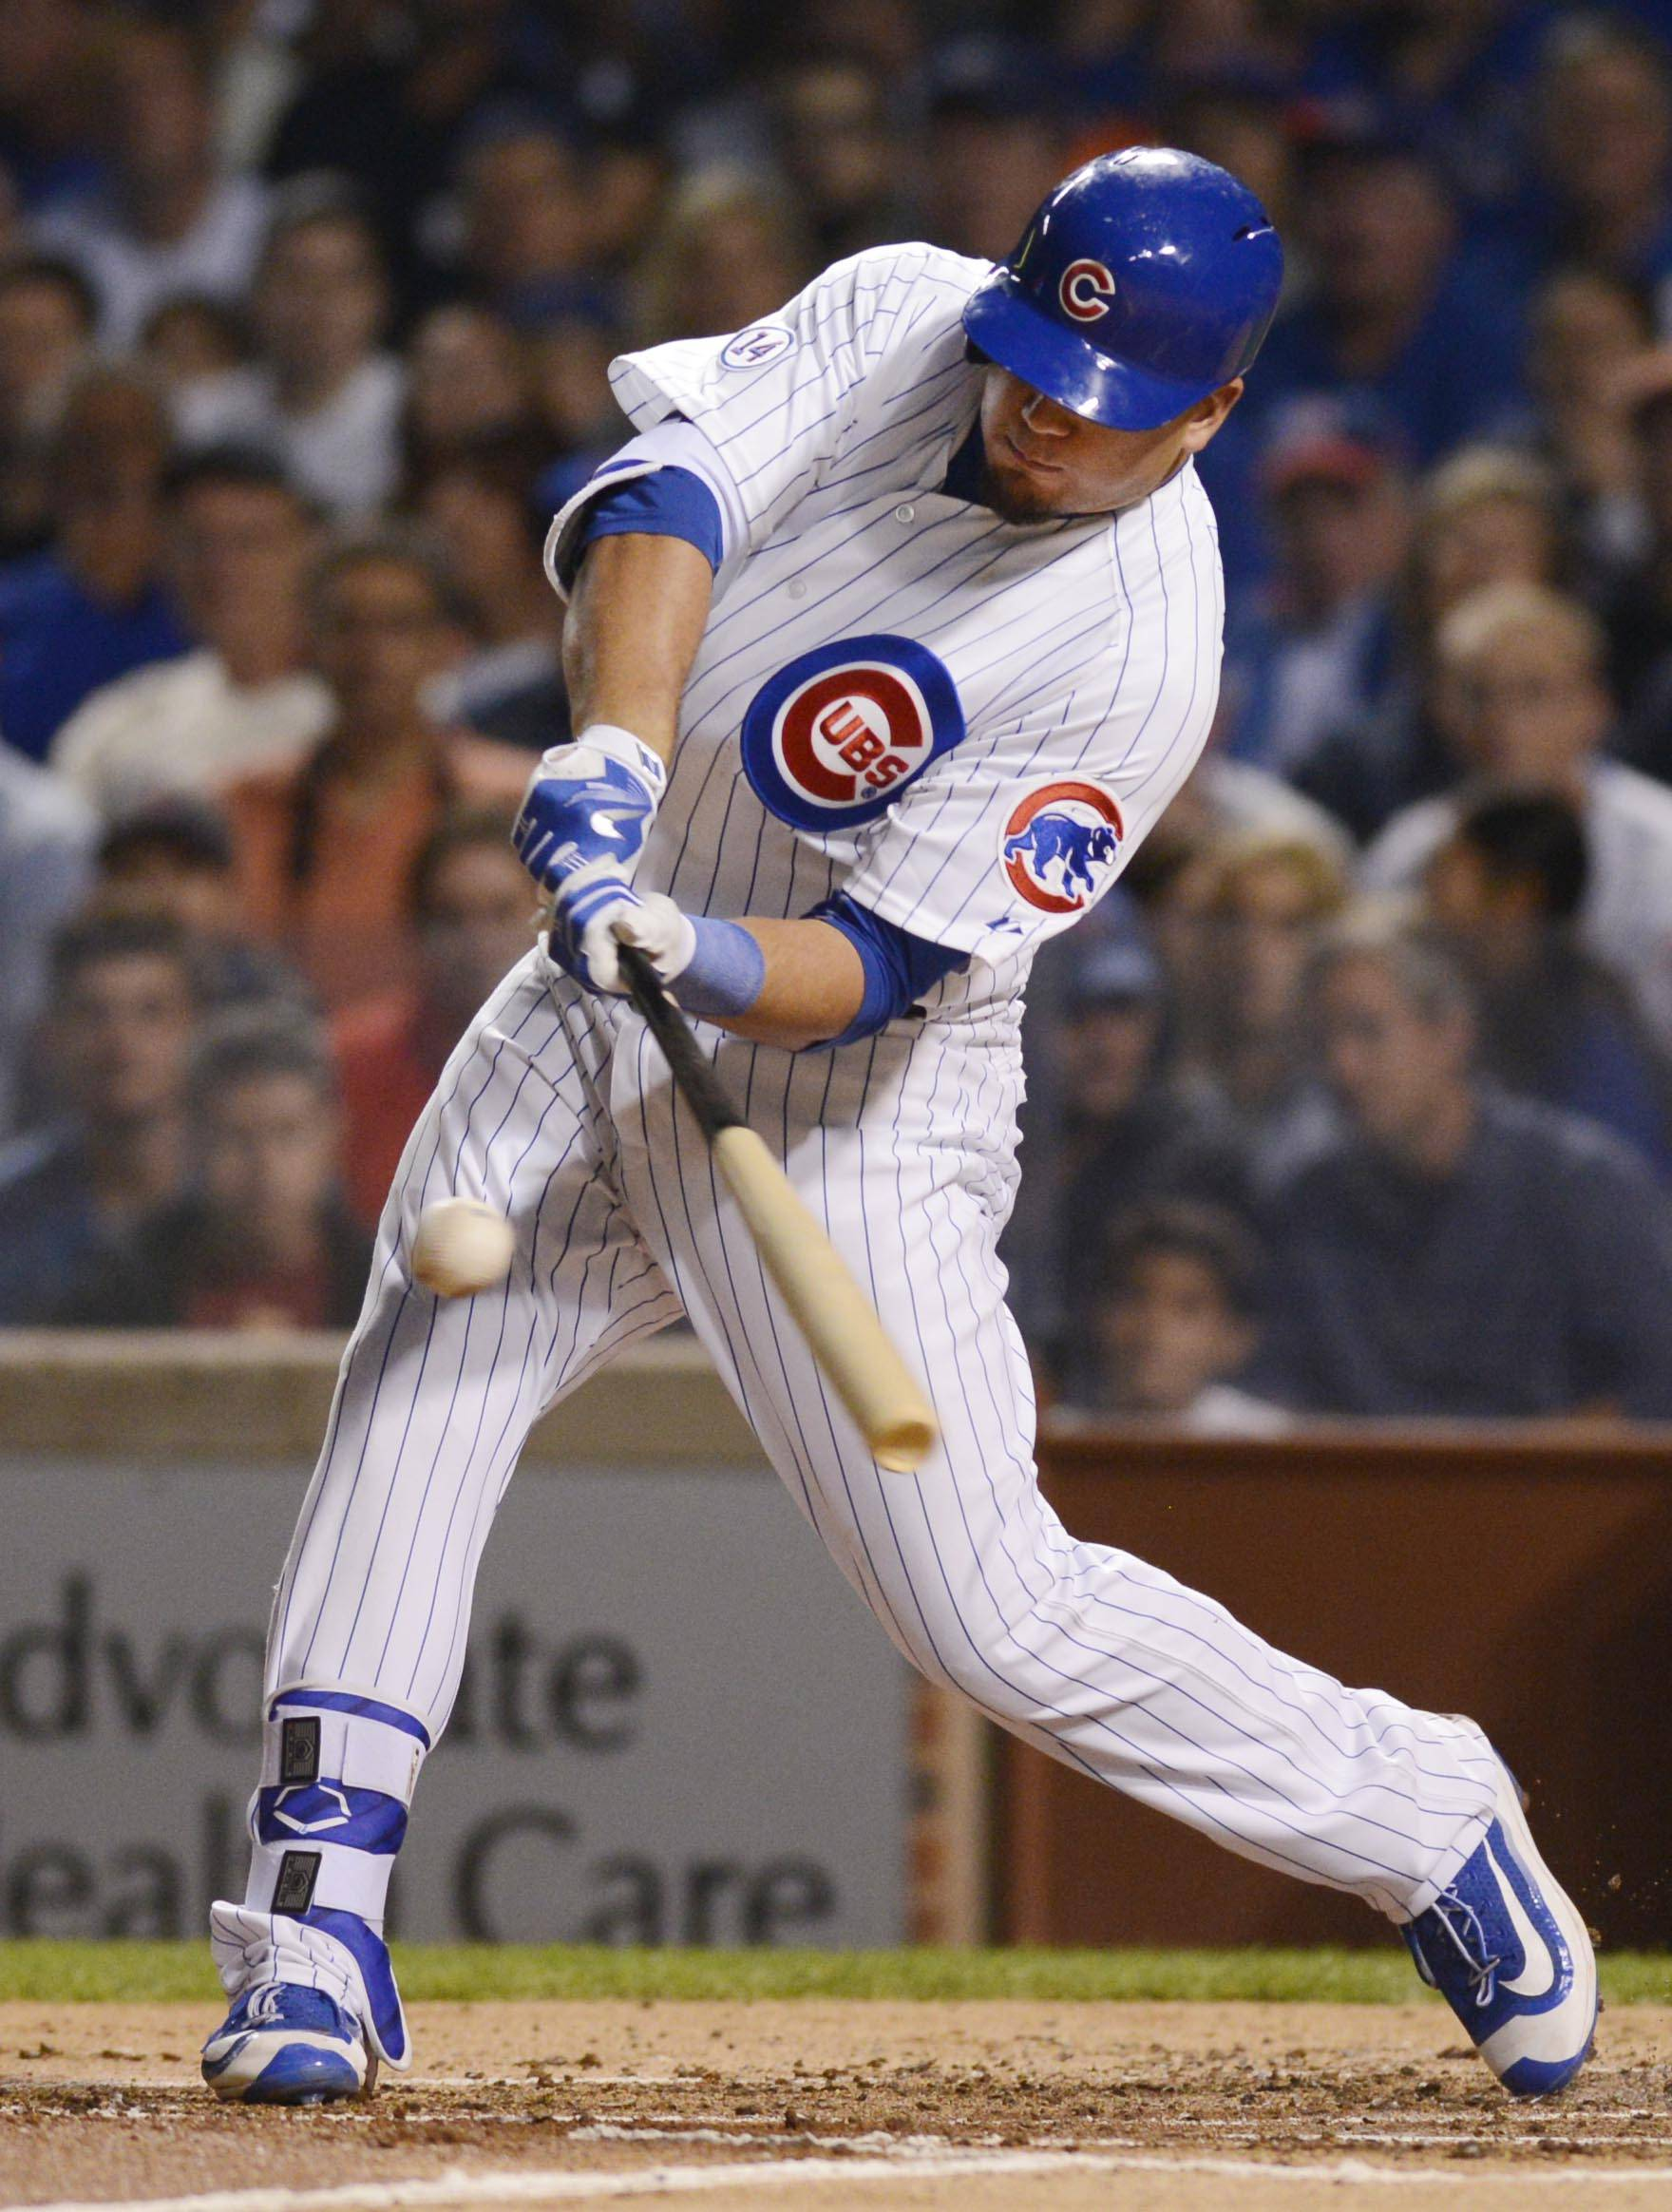 Cubs hoping Schwarber finds his 'hitter' swing in Iowa